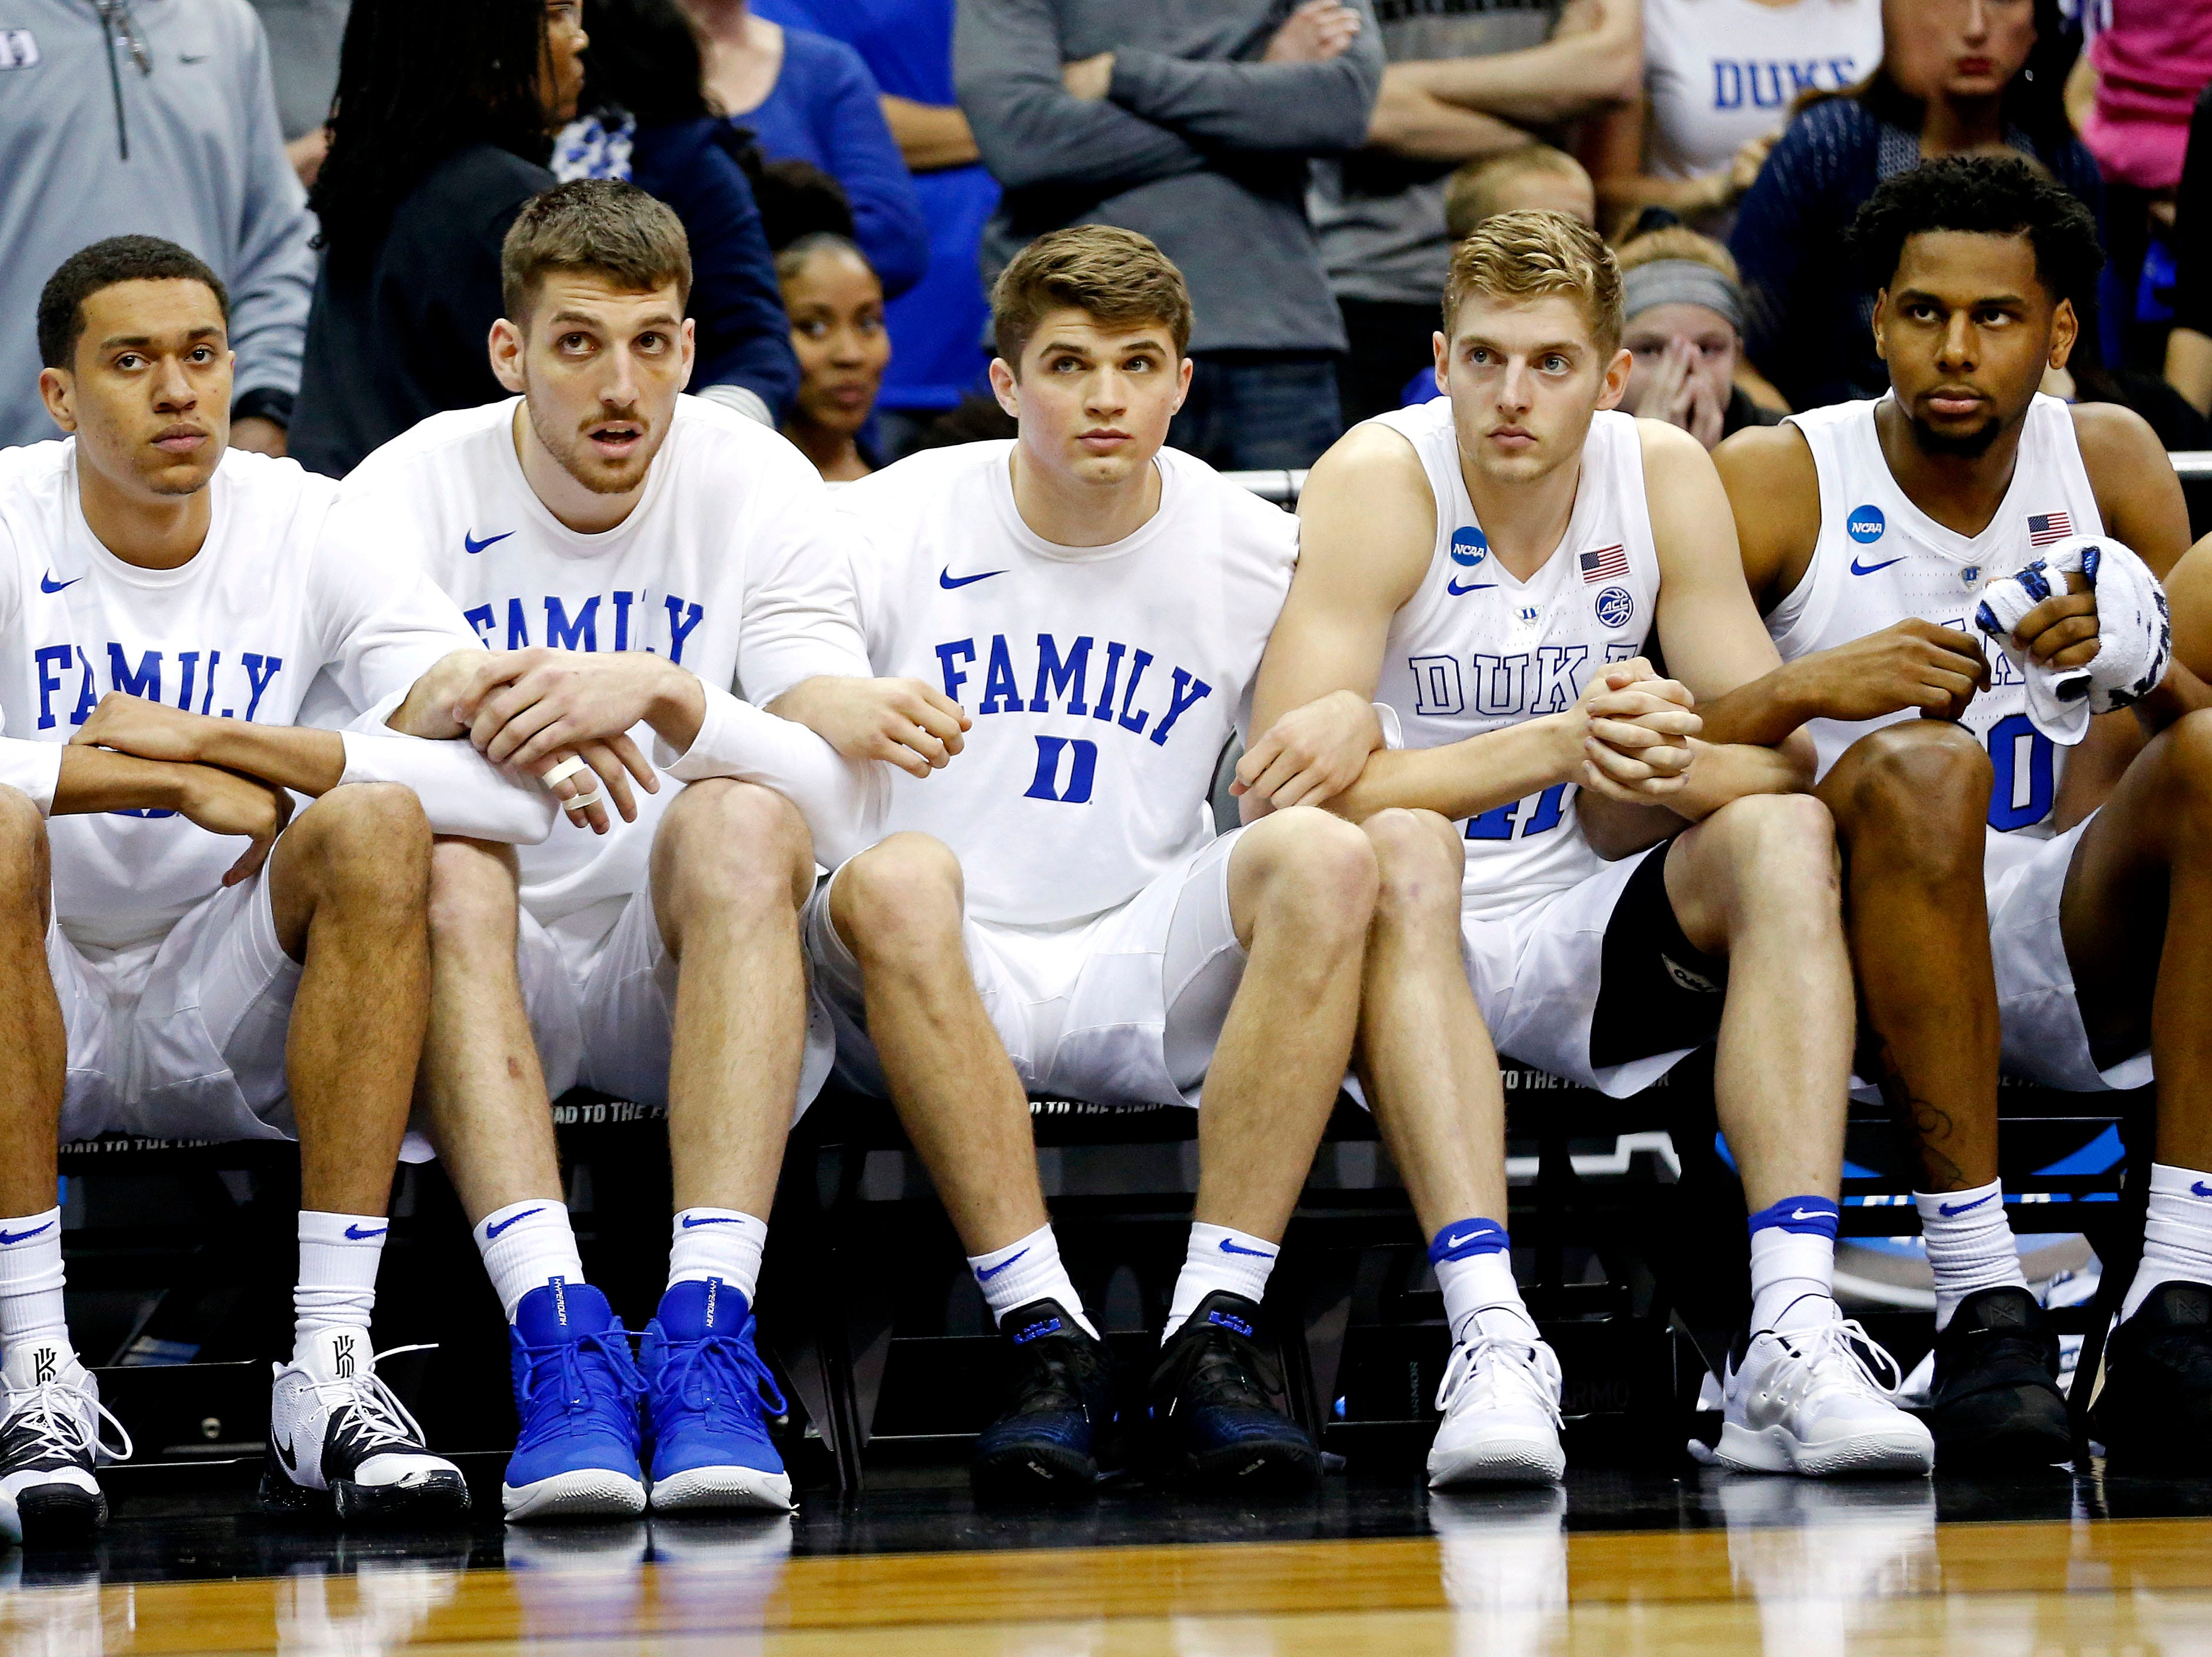 Mar 31, 2019; Washington, DC, USA; The Duke Blue Devils bench reacts during the second half against the Michigan State Spartans in the championship game of the east regional of the 2019 NCAA Tournament at Capital One Arena. Mandatory Credit: Amber Searls-USA TODAY Sports